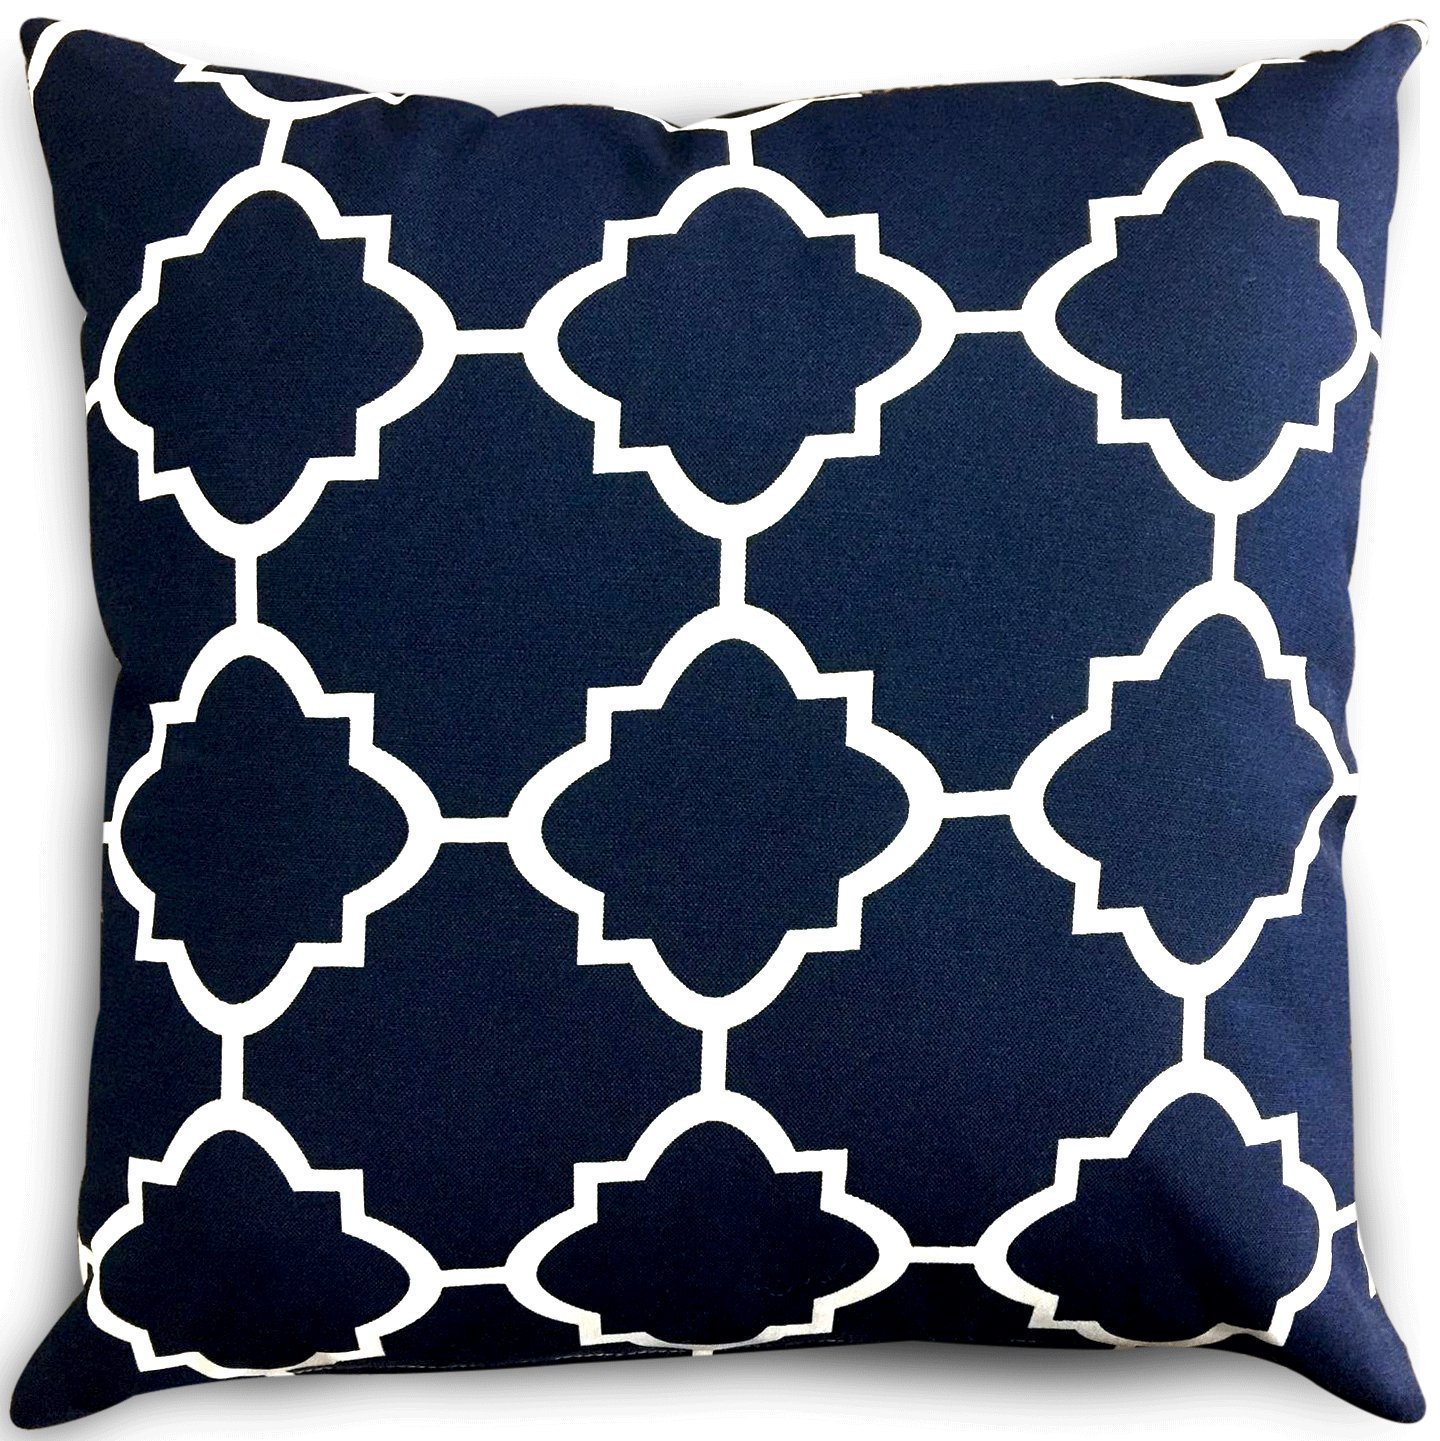 Decorative Square 18 X 18 Inch Throw Pillows Navy U0026 White Moroccan  Quatrefoil Lattice Cushion Pillow